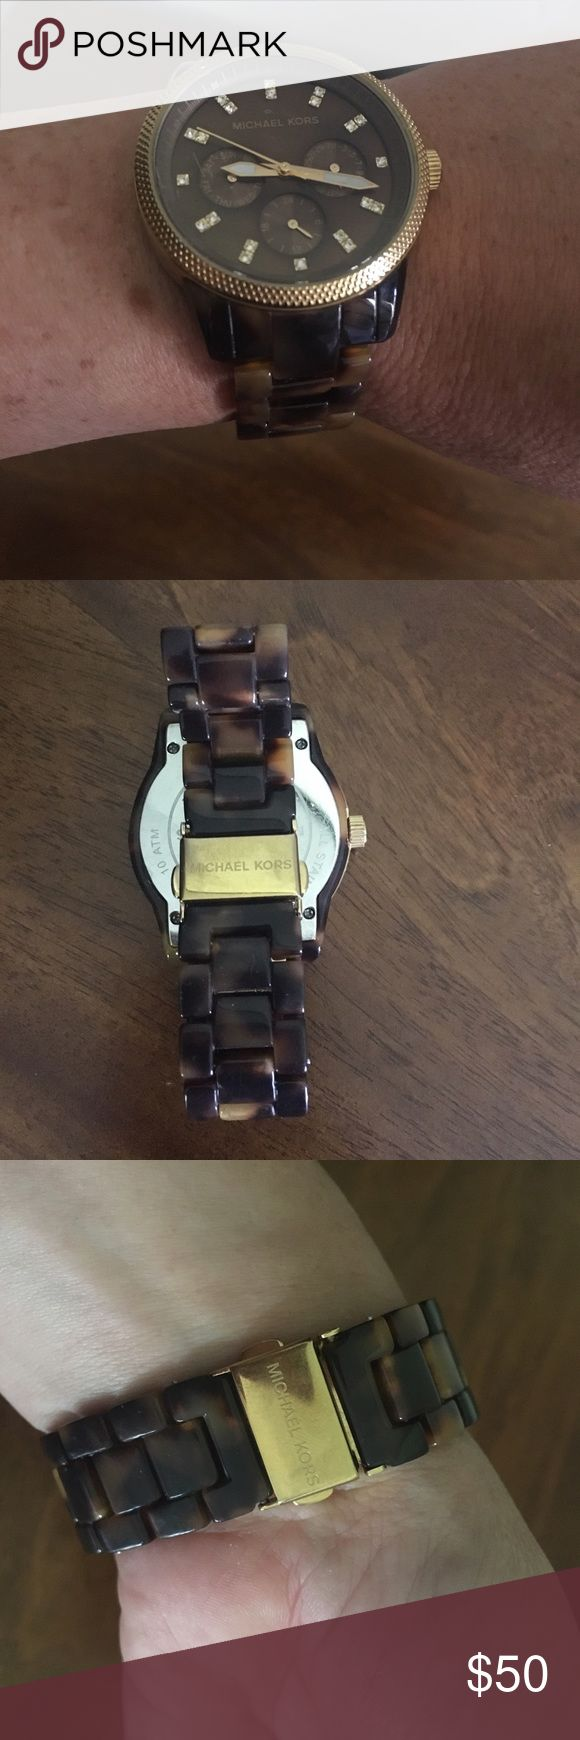 "MK tortoise shell watch. Michael Kors tortoise shell colored watch. Excellent condition with minor scratch on face. Hardly noticeable.  Inside circumference measures 6"". No longer have the extra links, no box. KORS Michael Kors Accessories Watches"